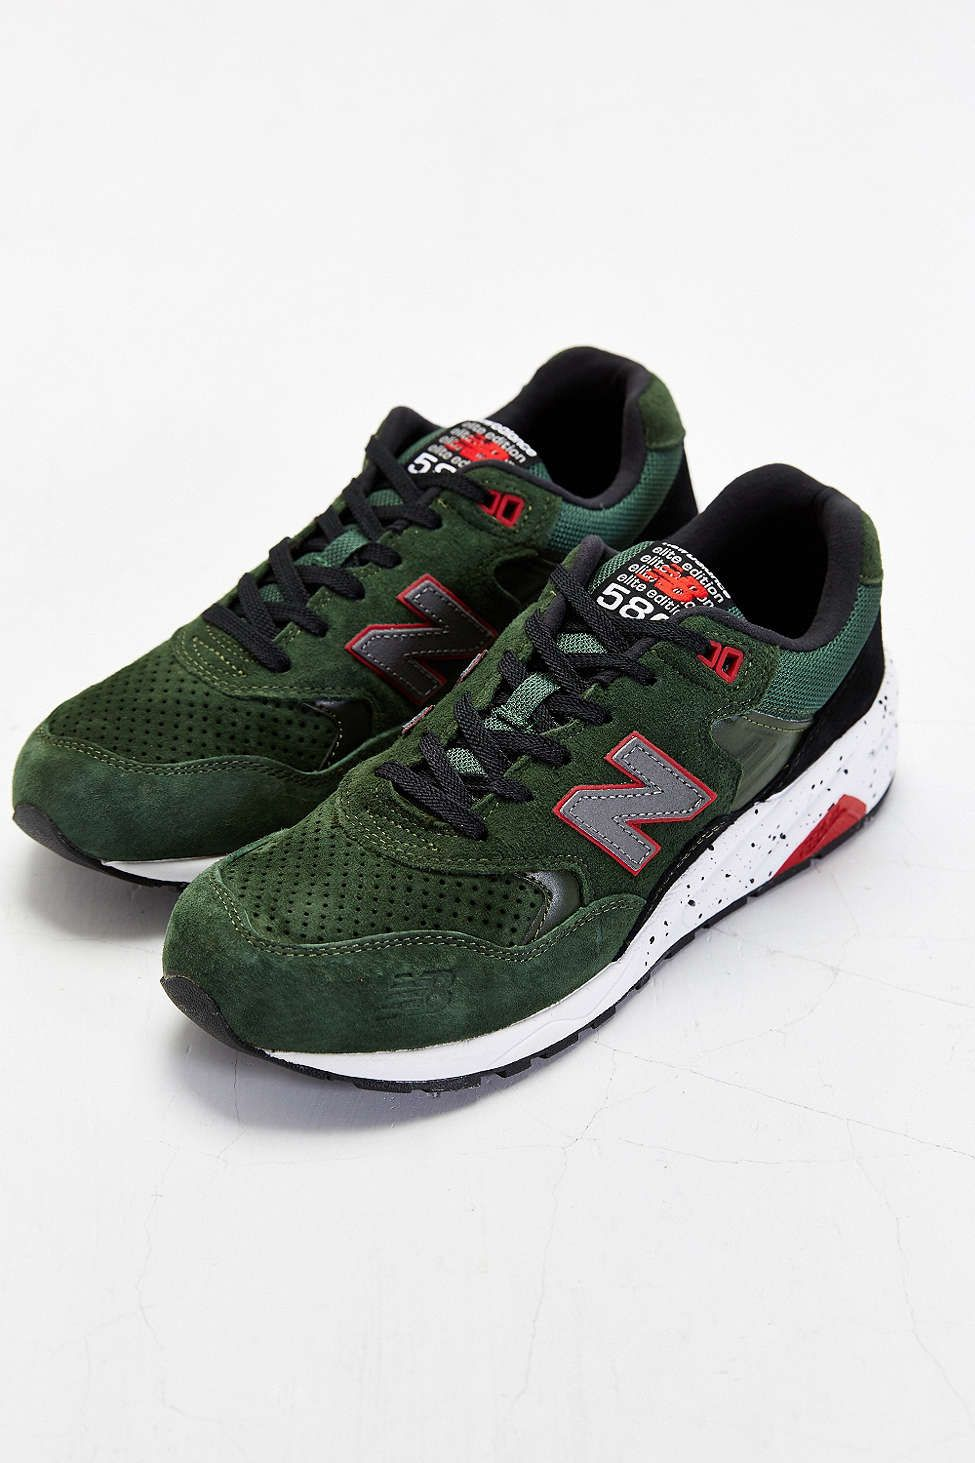 new arrival 1f484 b9847 New Balance 580 Running Sneaker | Stuff I want because of ...